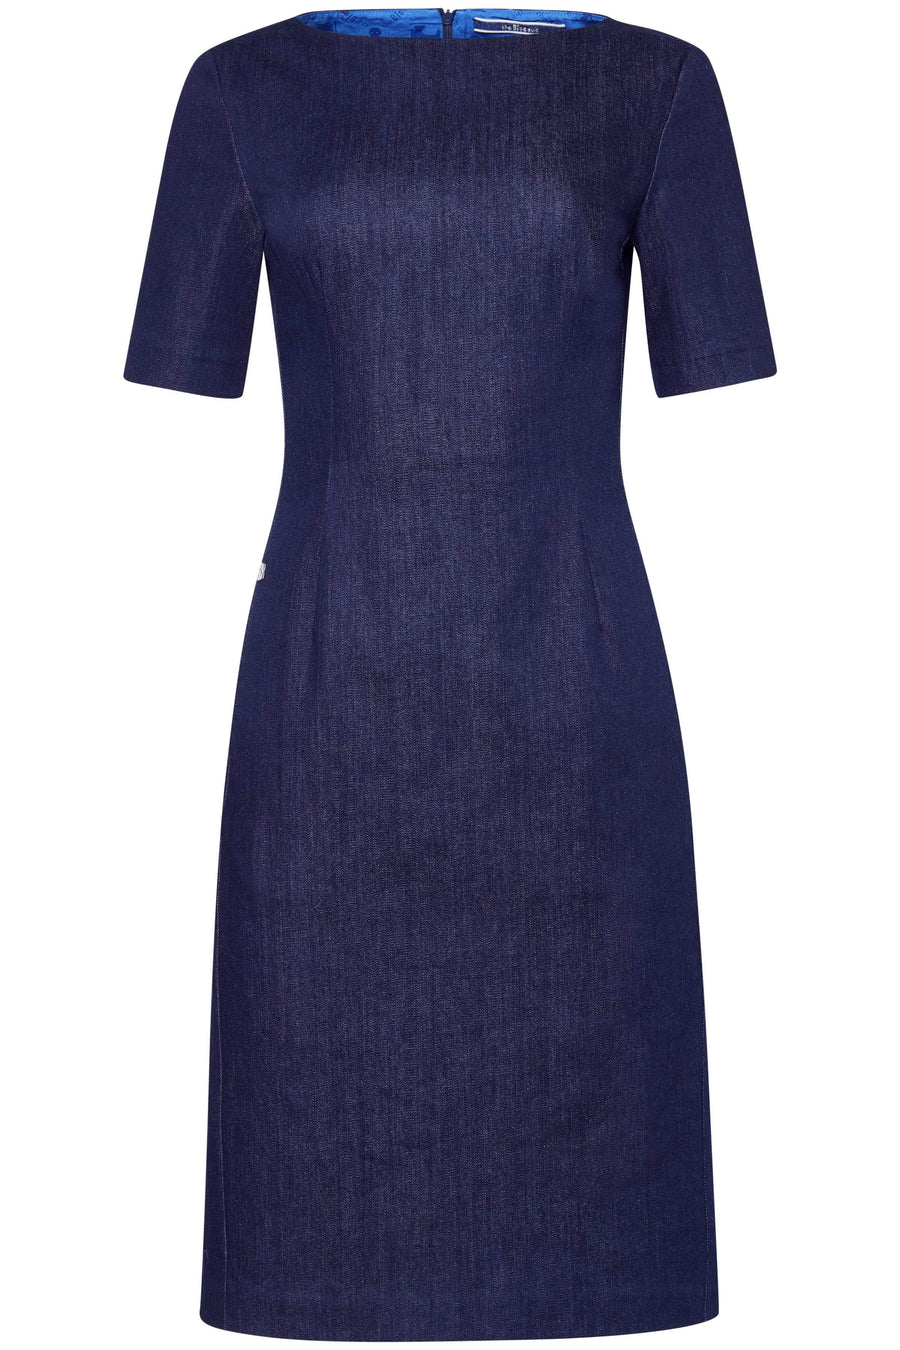 the Blue suit dress VICTORIA Dress. Organic Cotton. sustainable fashion ethical fashion